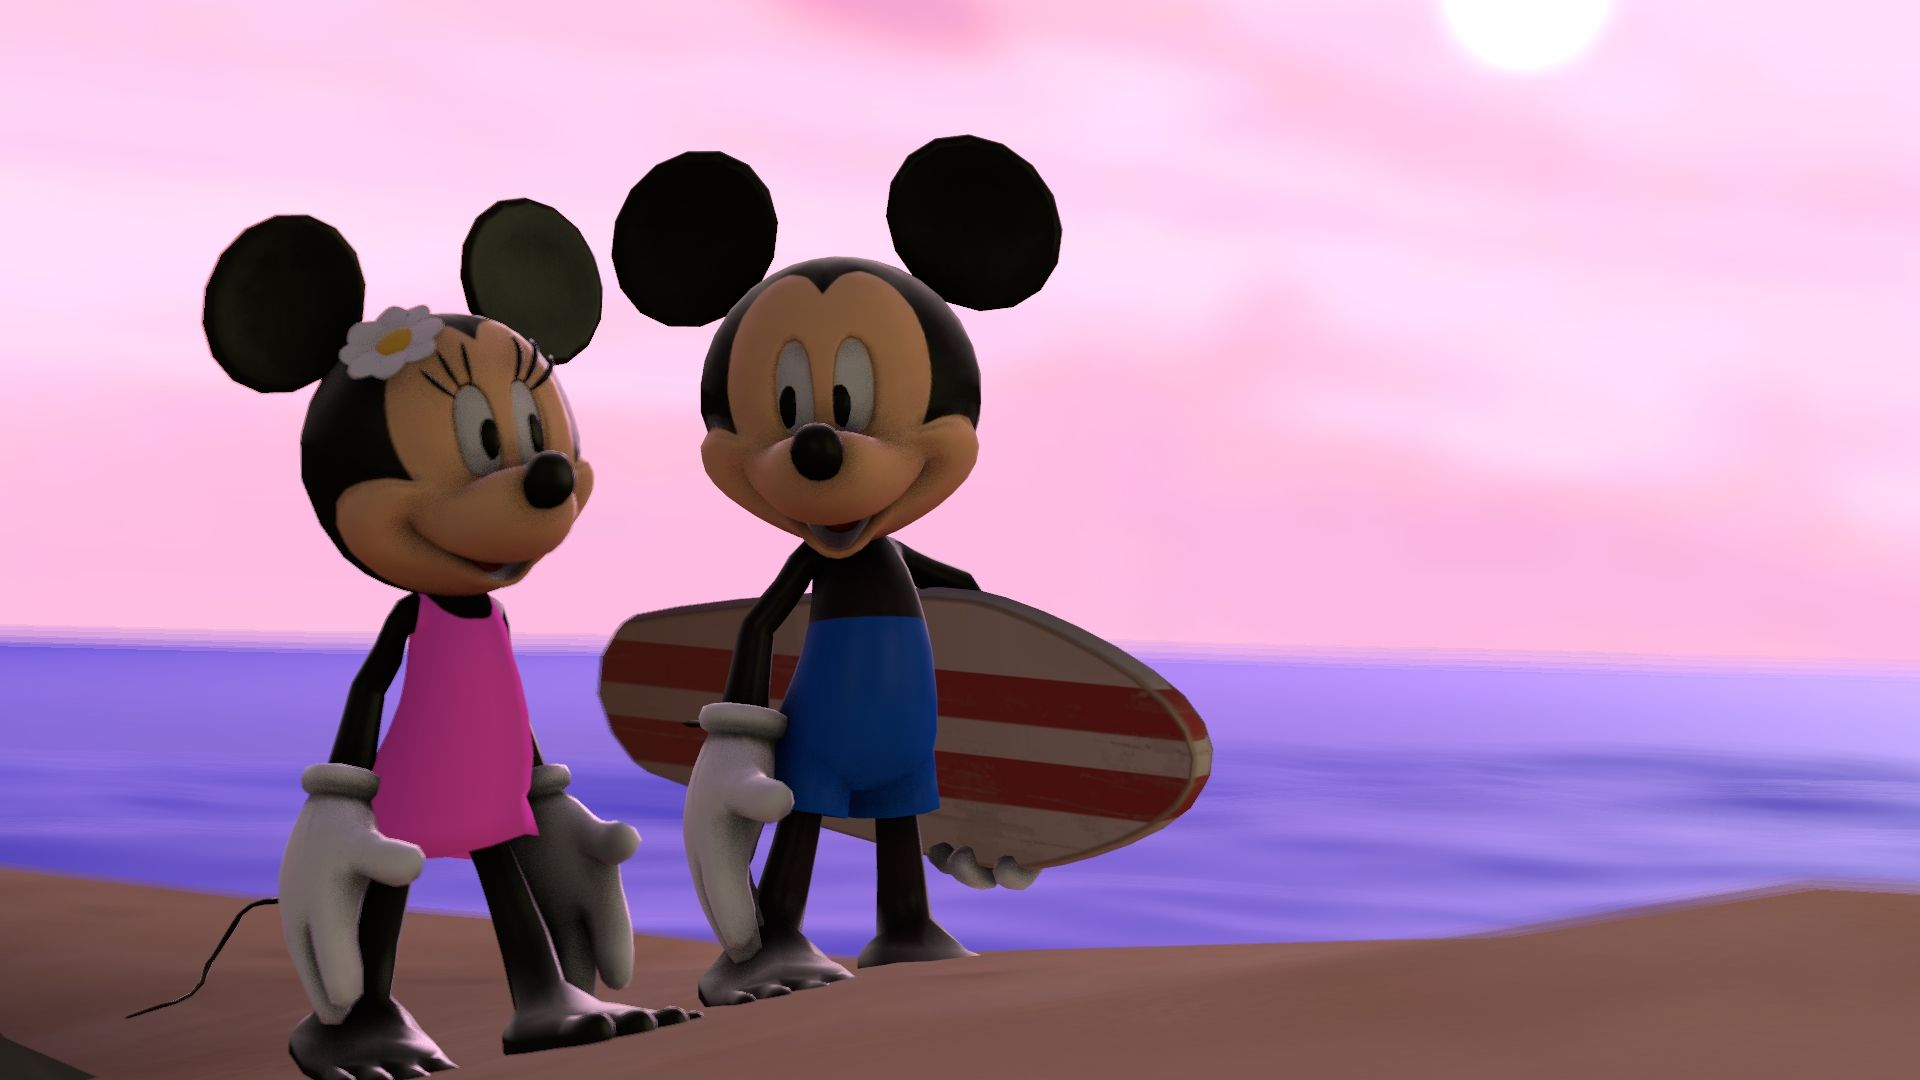 Summer Update For Mickey And Minnie Gmod Sfm By Infante2017 Mickey Mickey Mouse Wallpaper Mickey And Friends